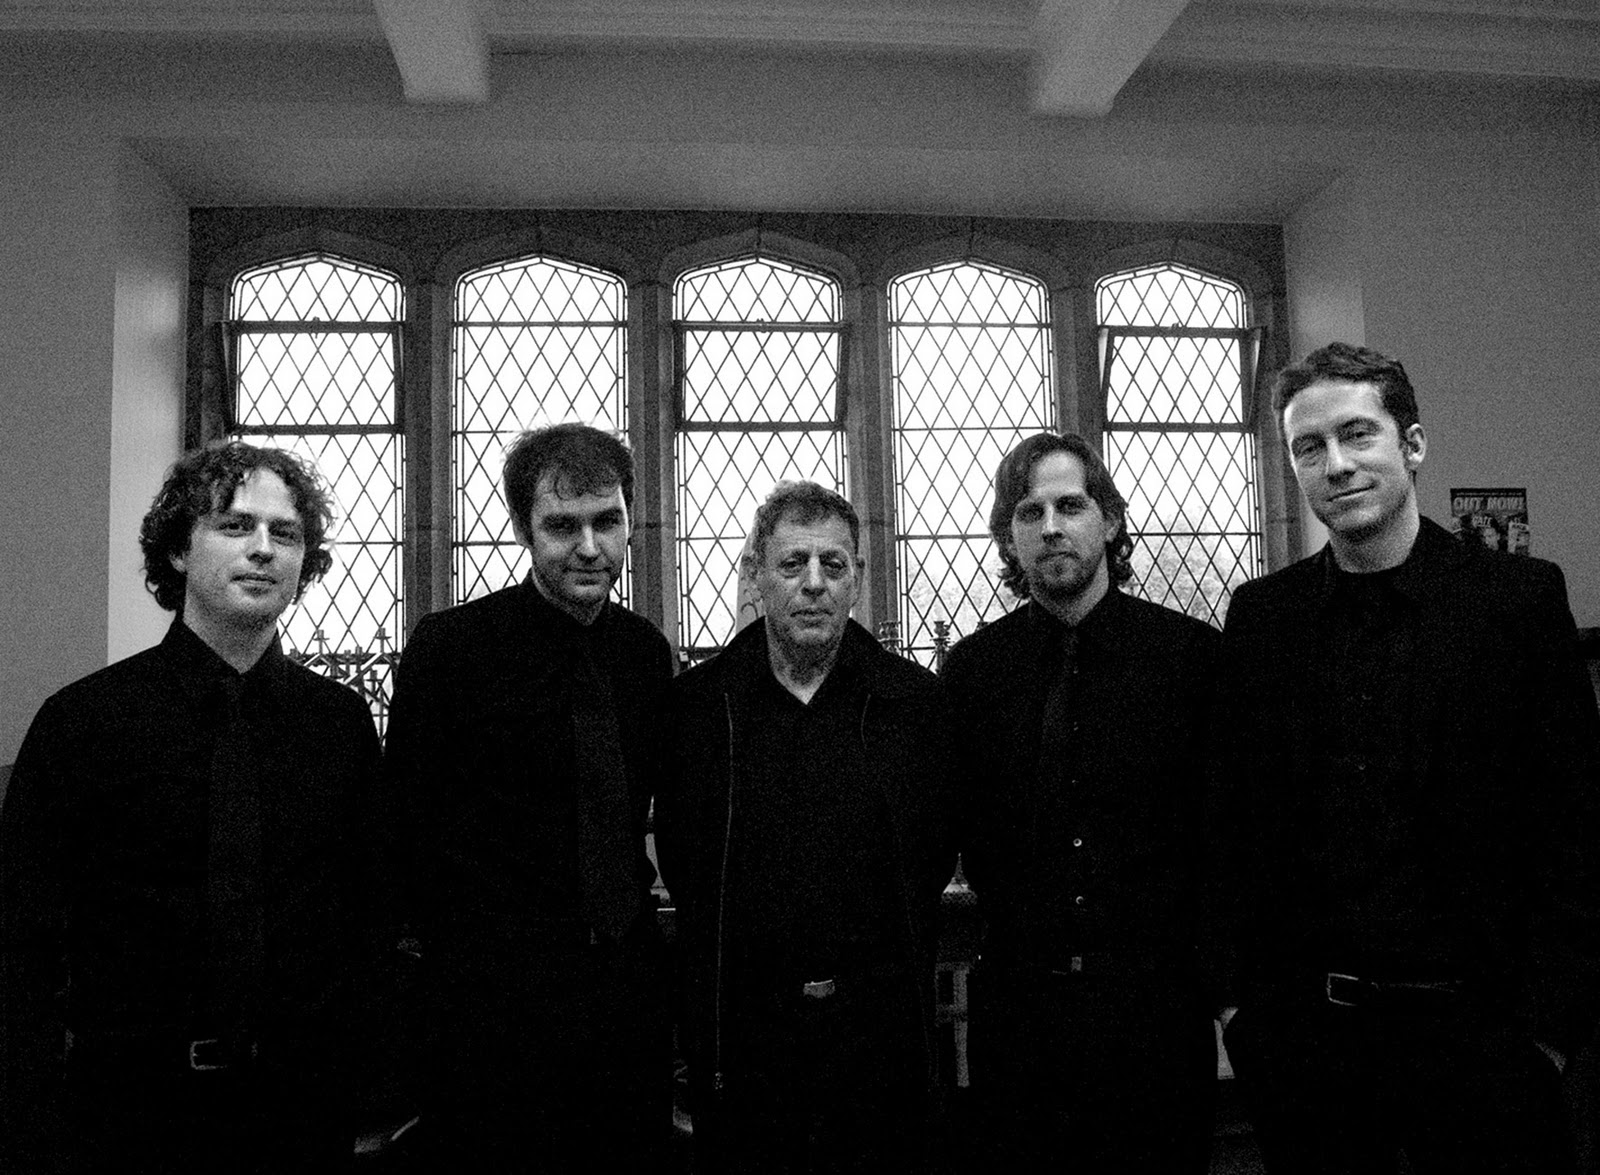 The Dublin Guitar Quartet plays Philip Glass